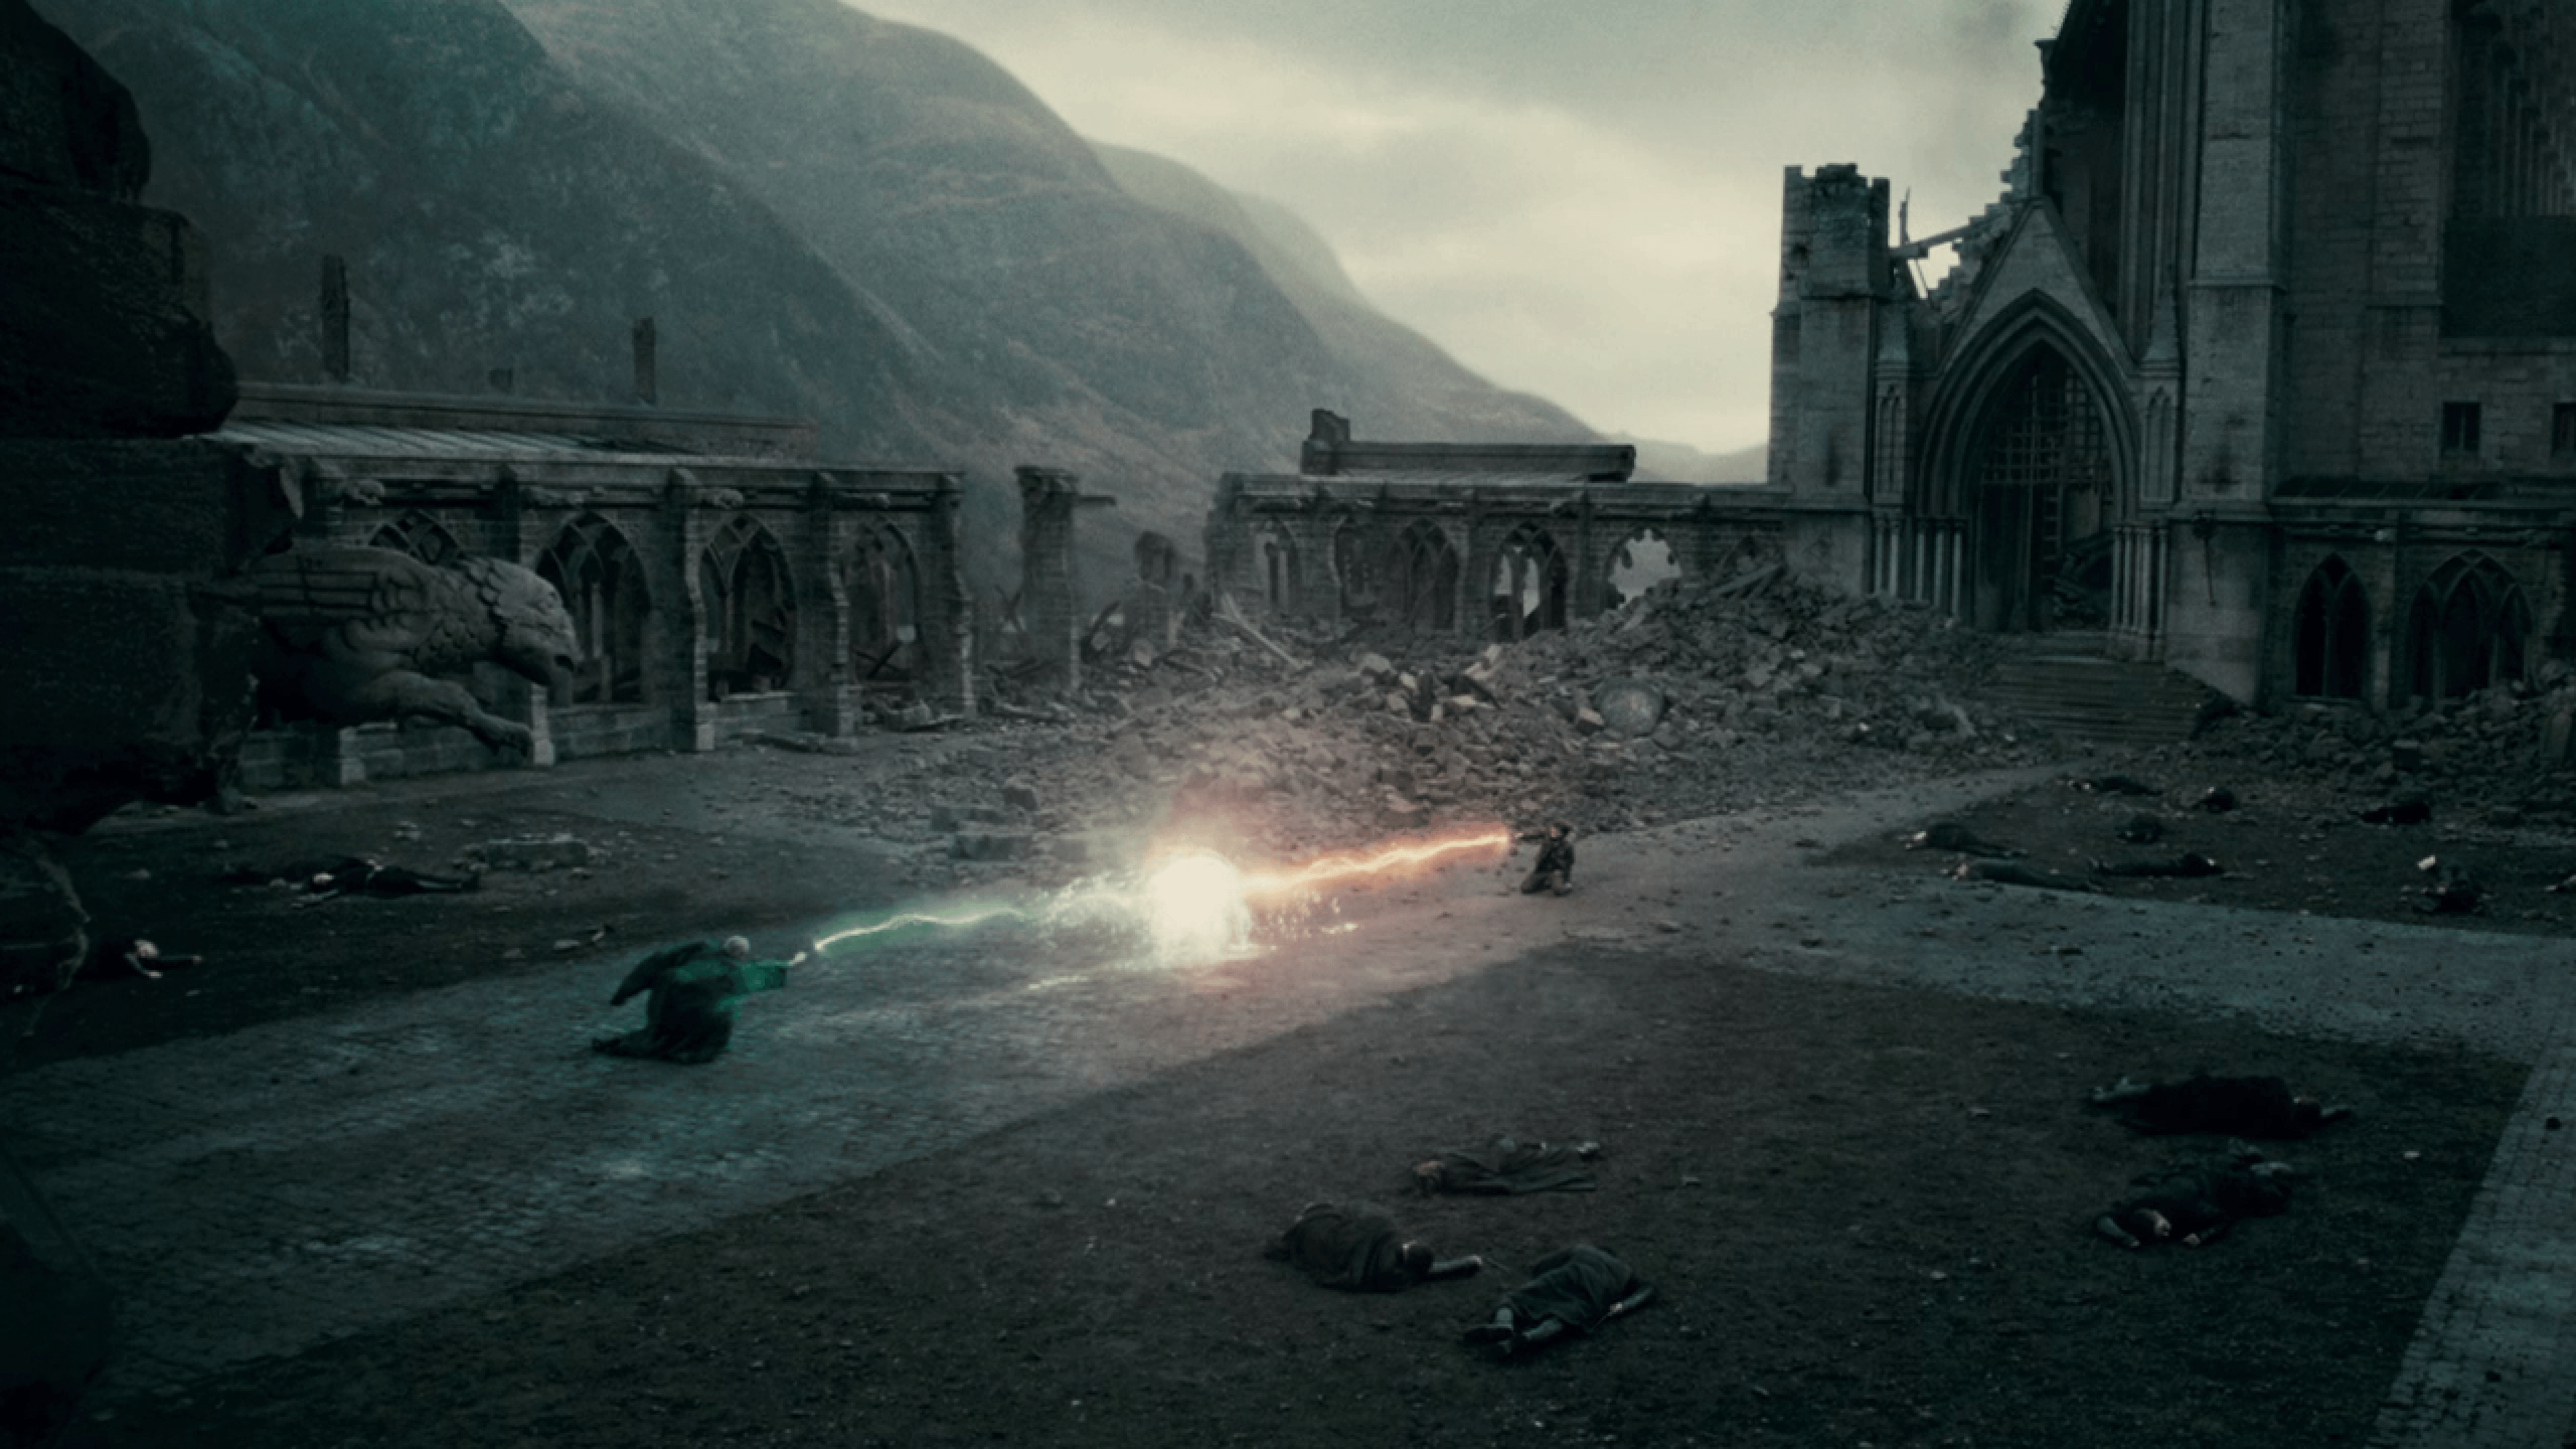 Harry Potter 9 Wallpapers - Wallpaper Cave